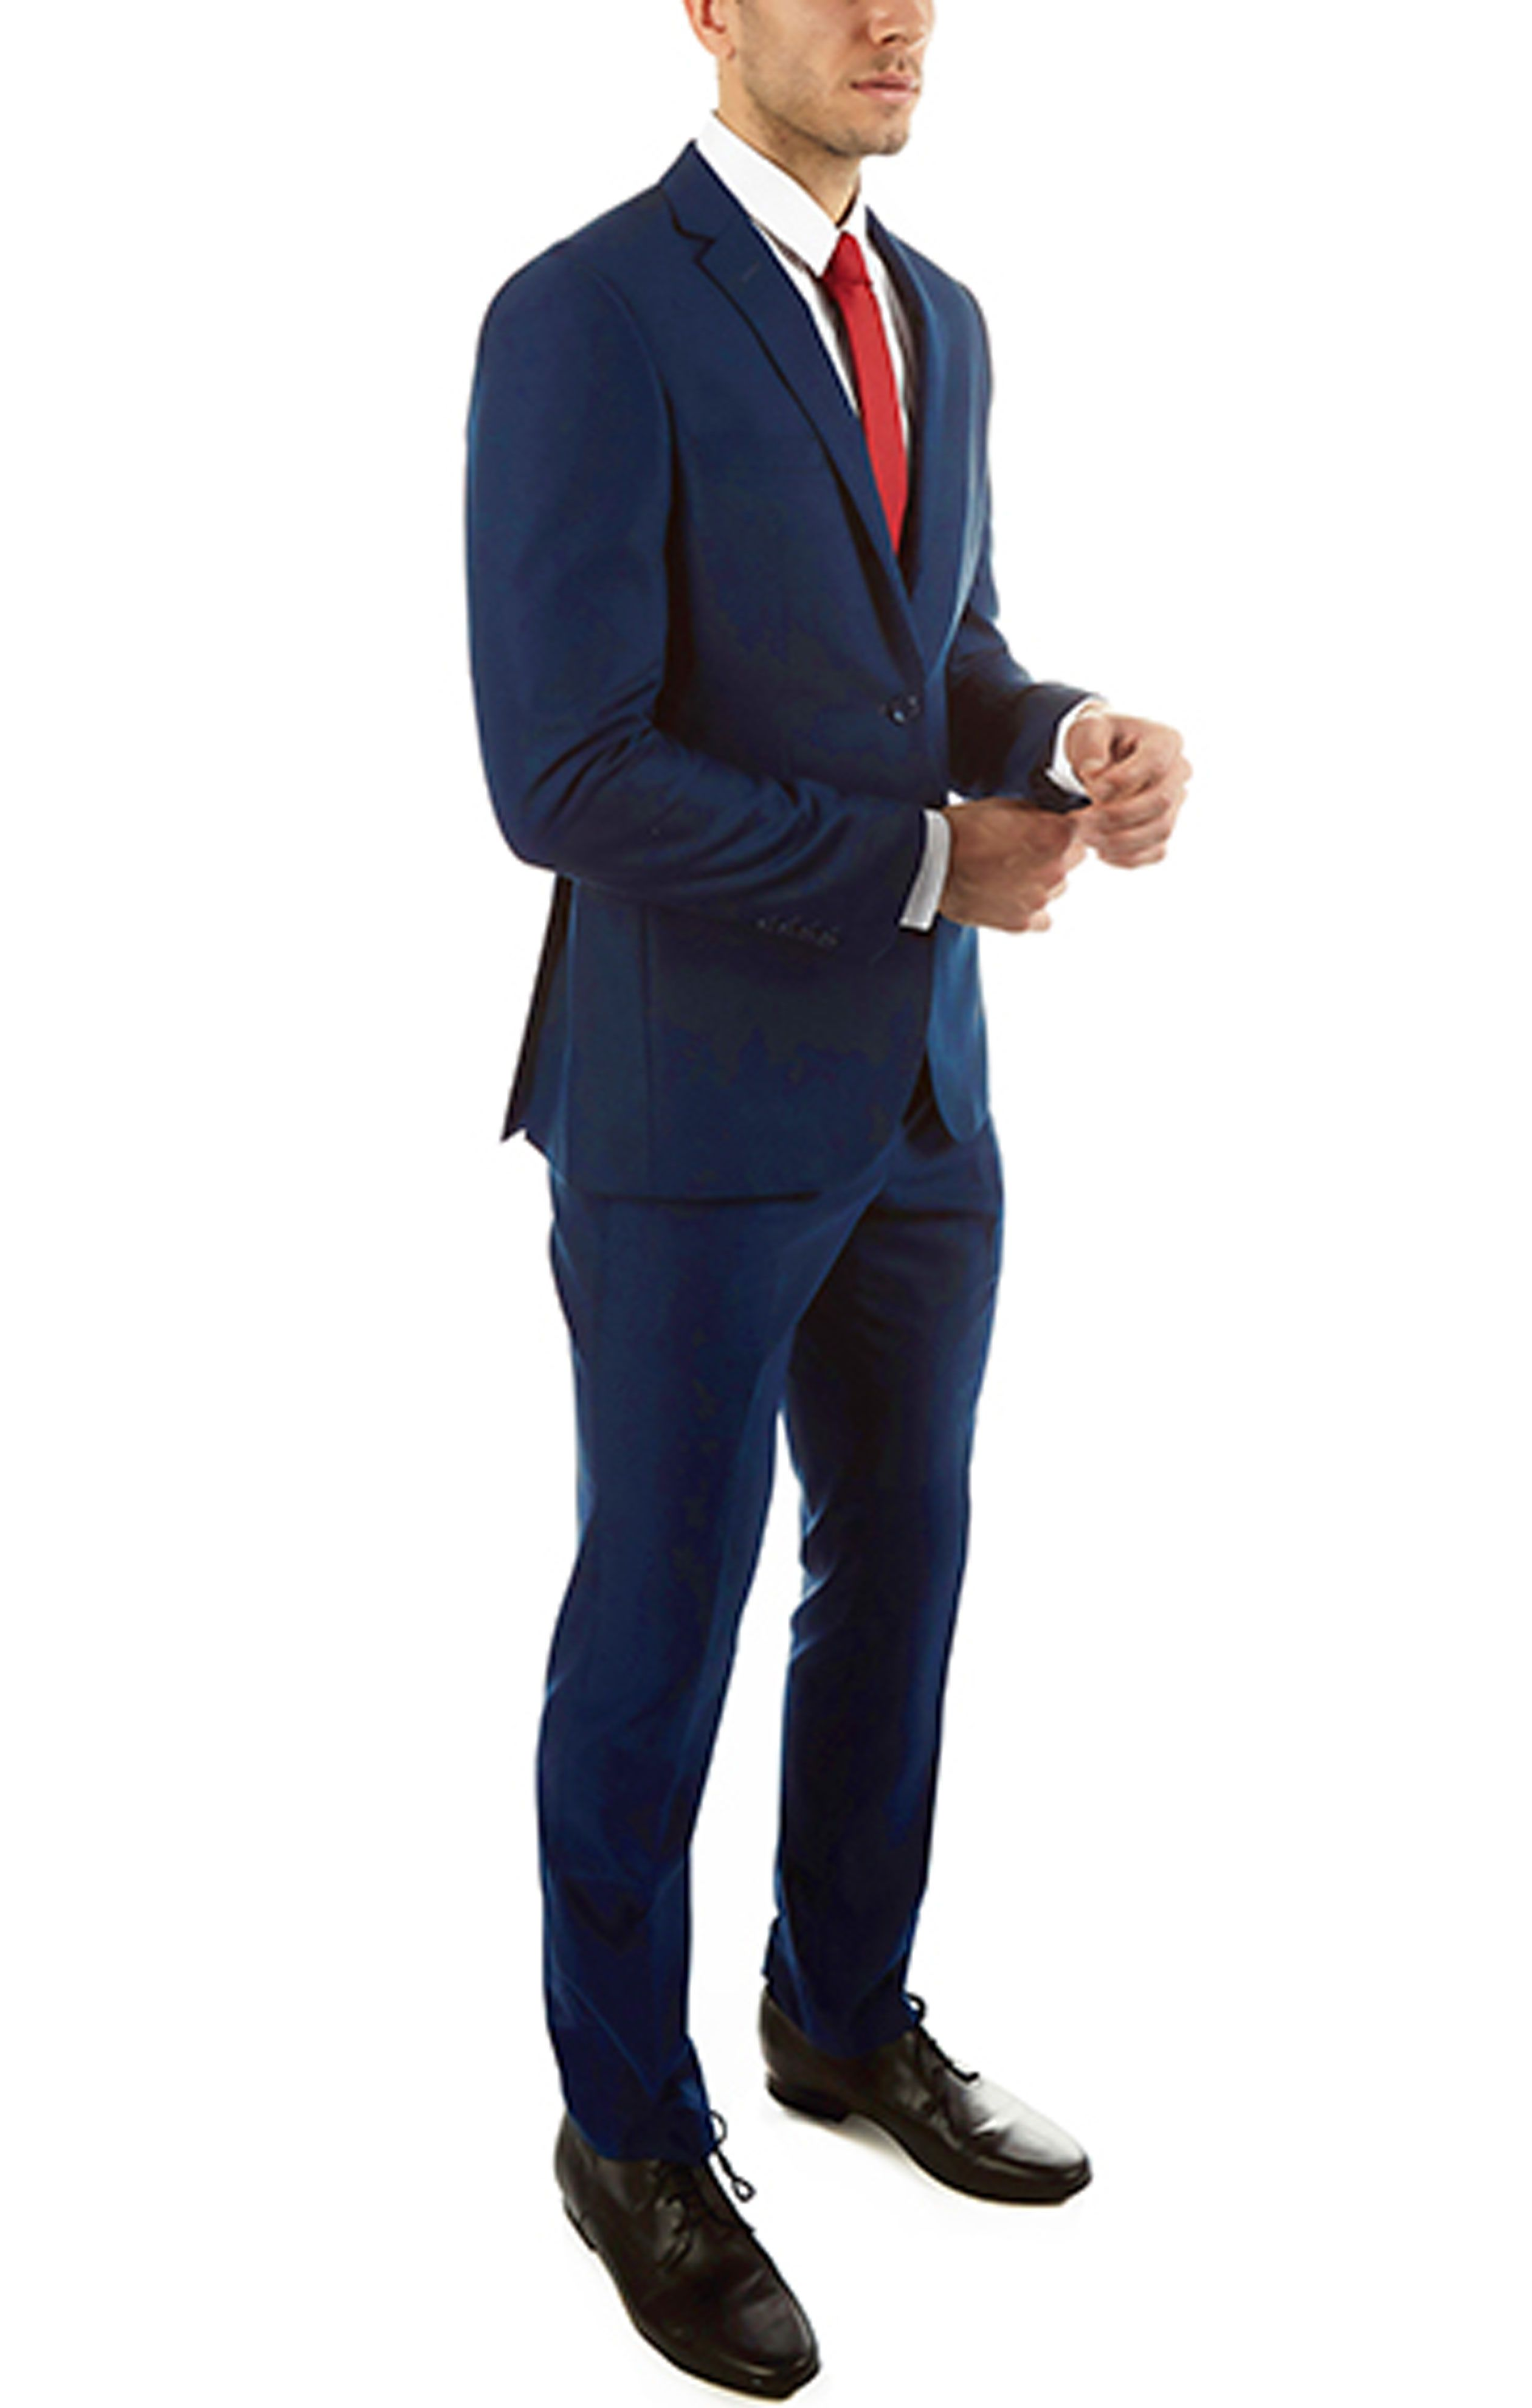 Try Pairing This Alberto Cardinali Slim Fit Navy Blue Suit With A